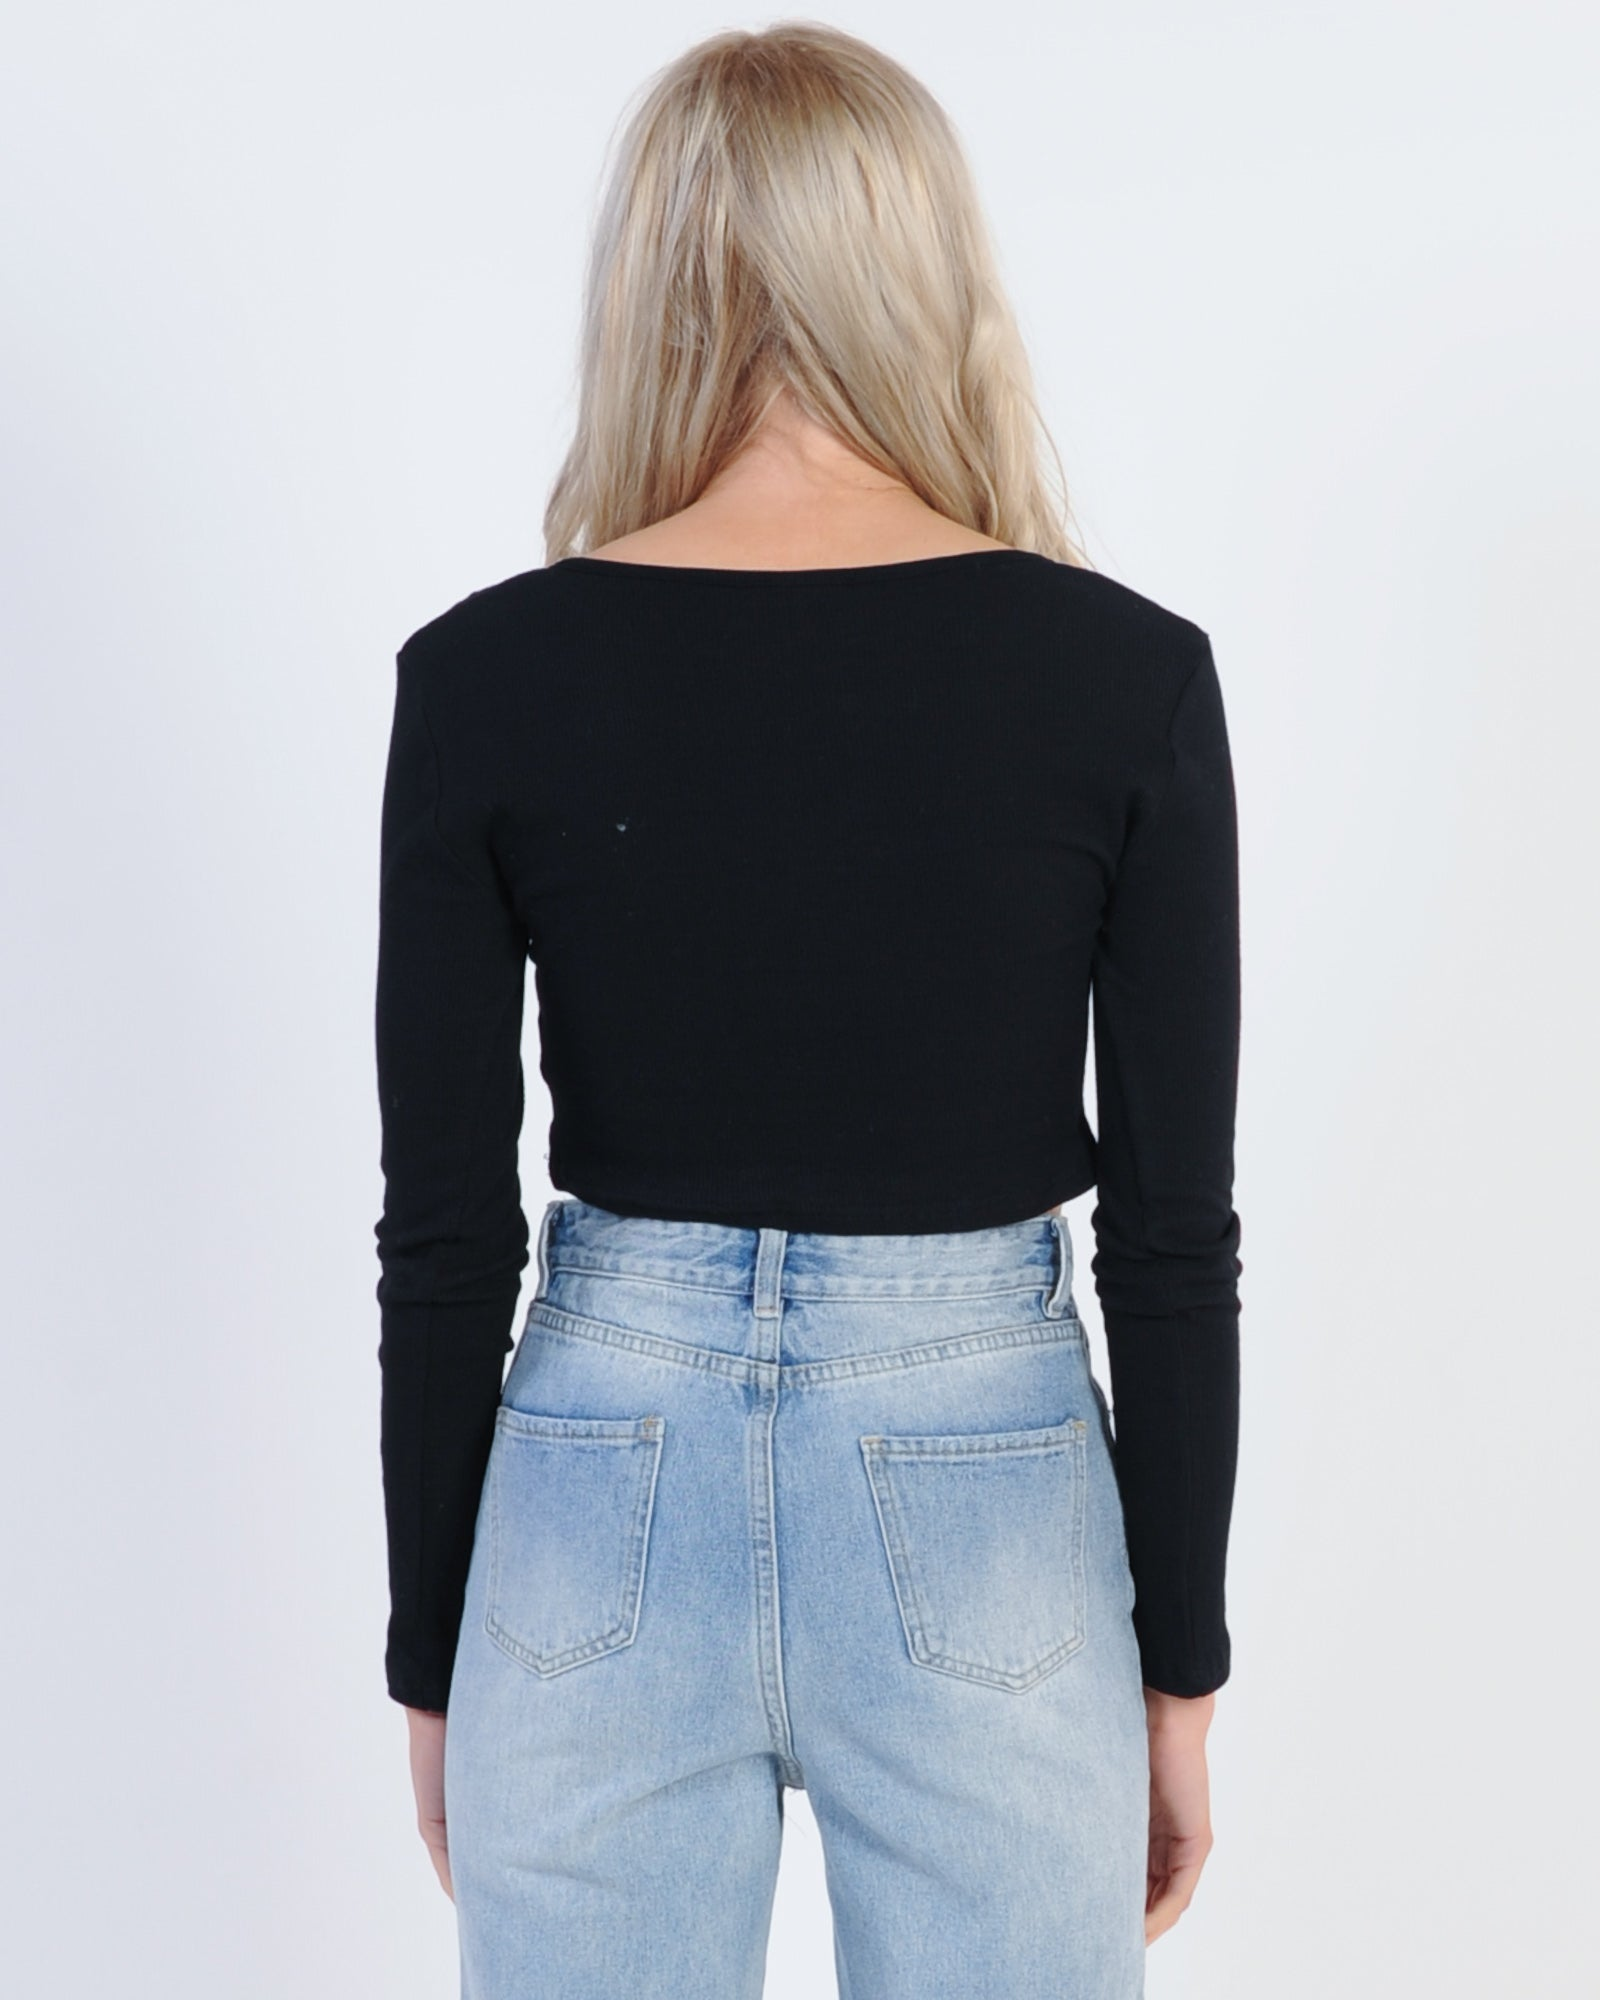 Carried Away Rib Top - Black